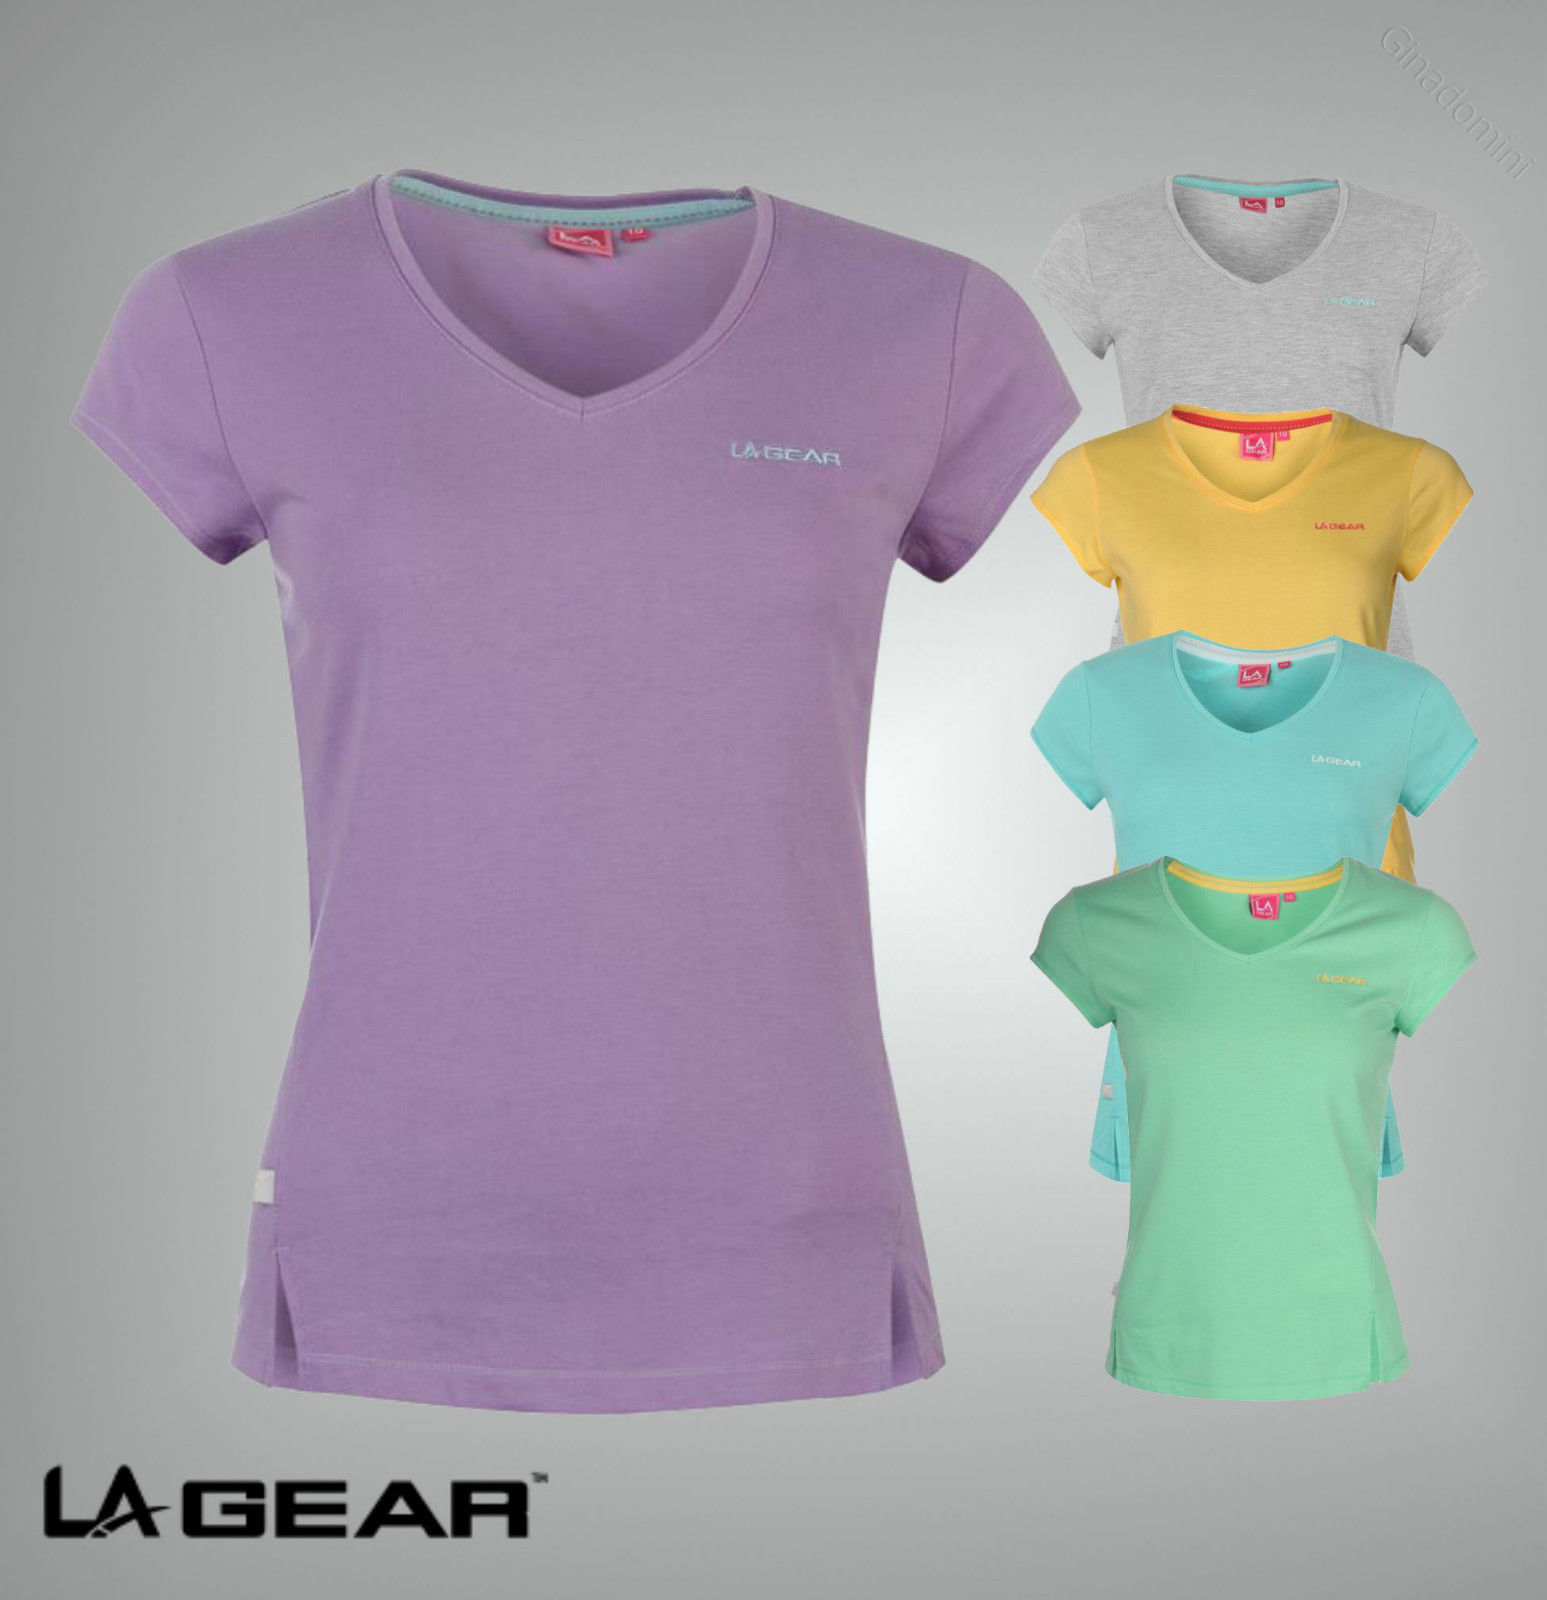 New Ladies Branded LA Gear Basic Everyday Workout Top V Neck T Shirt Size 8-20